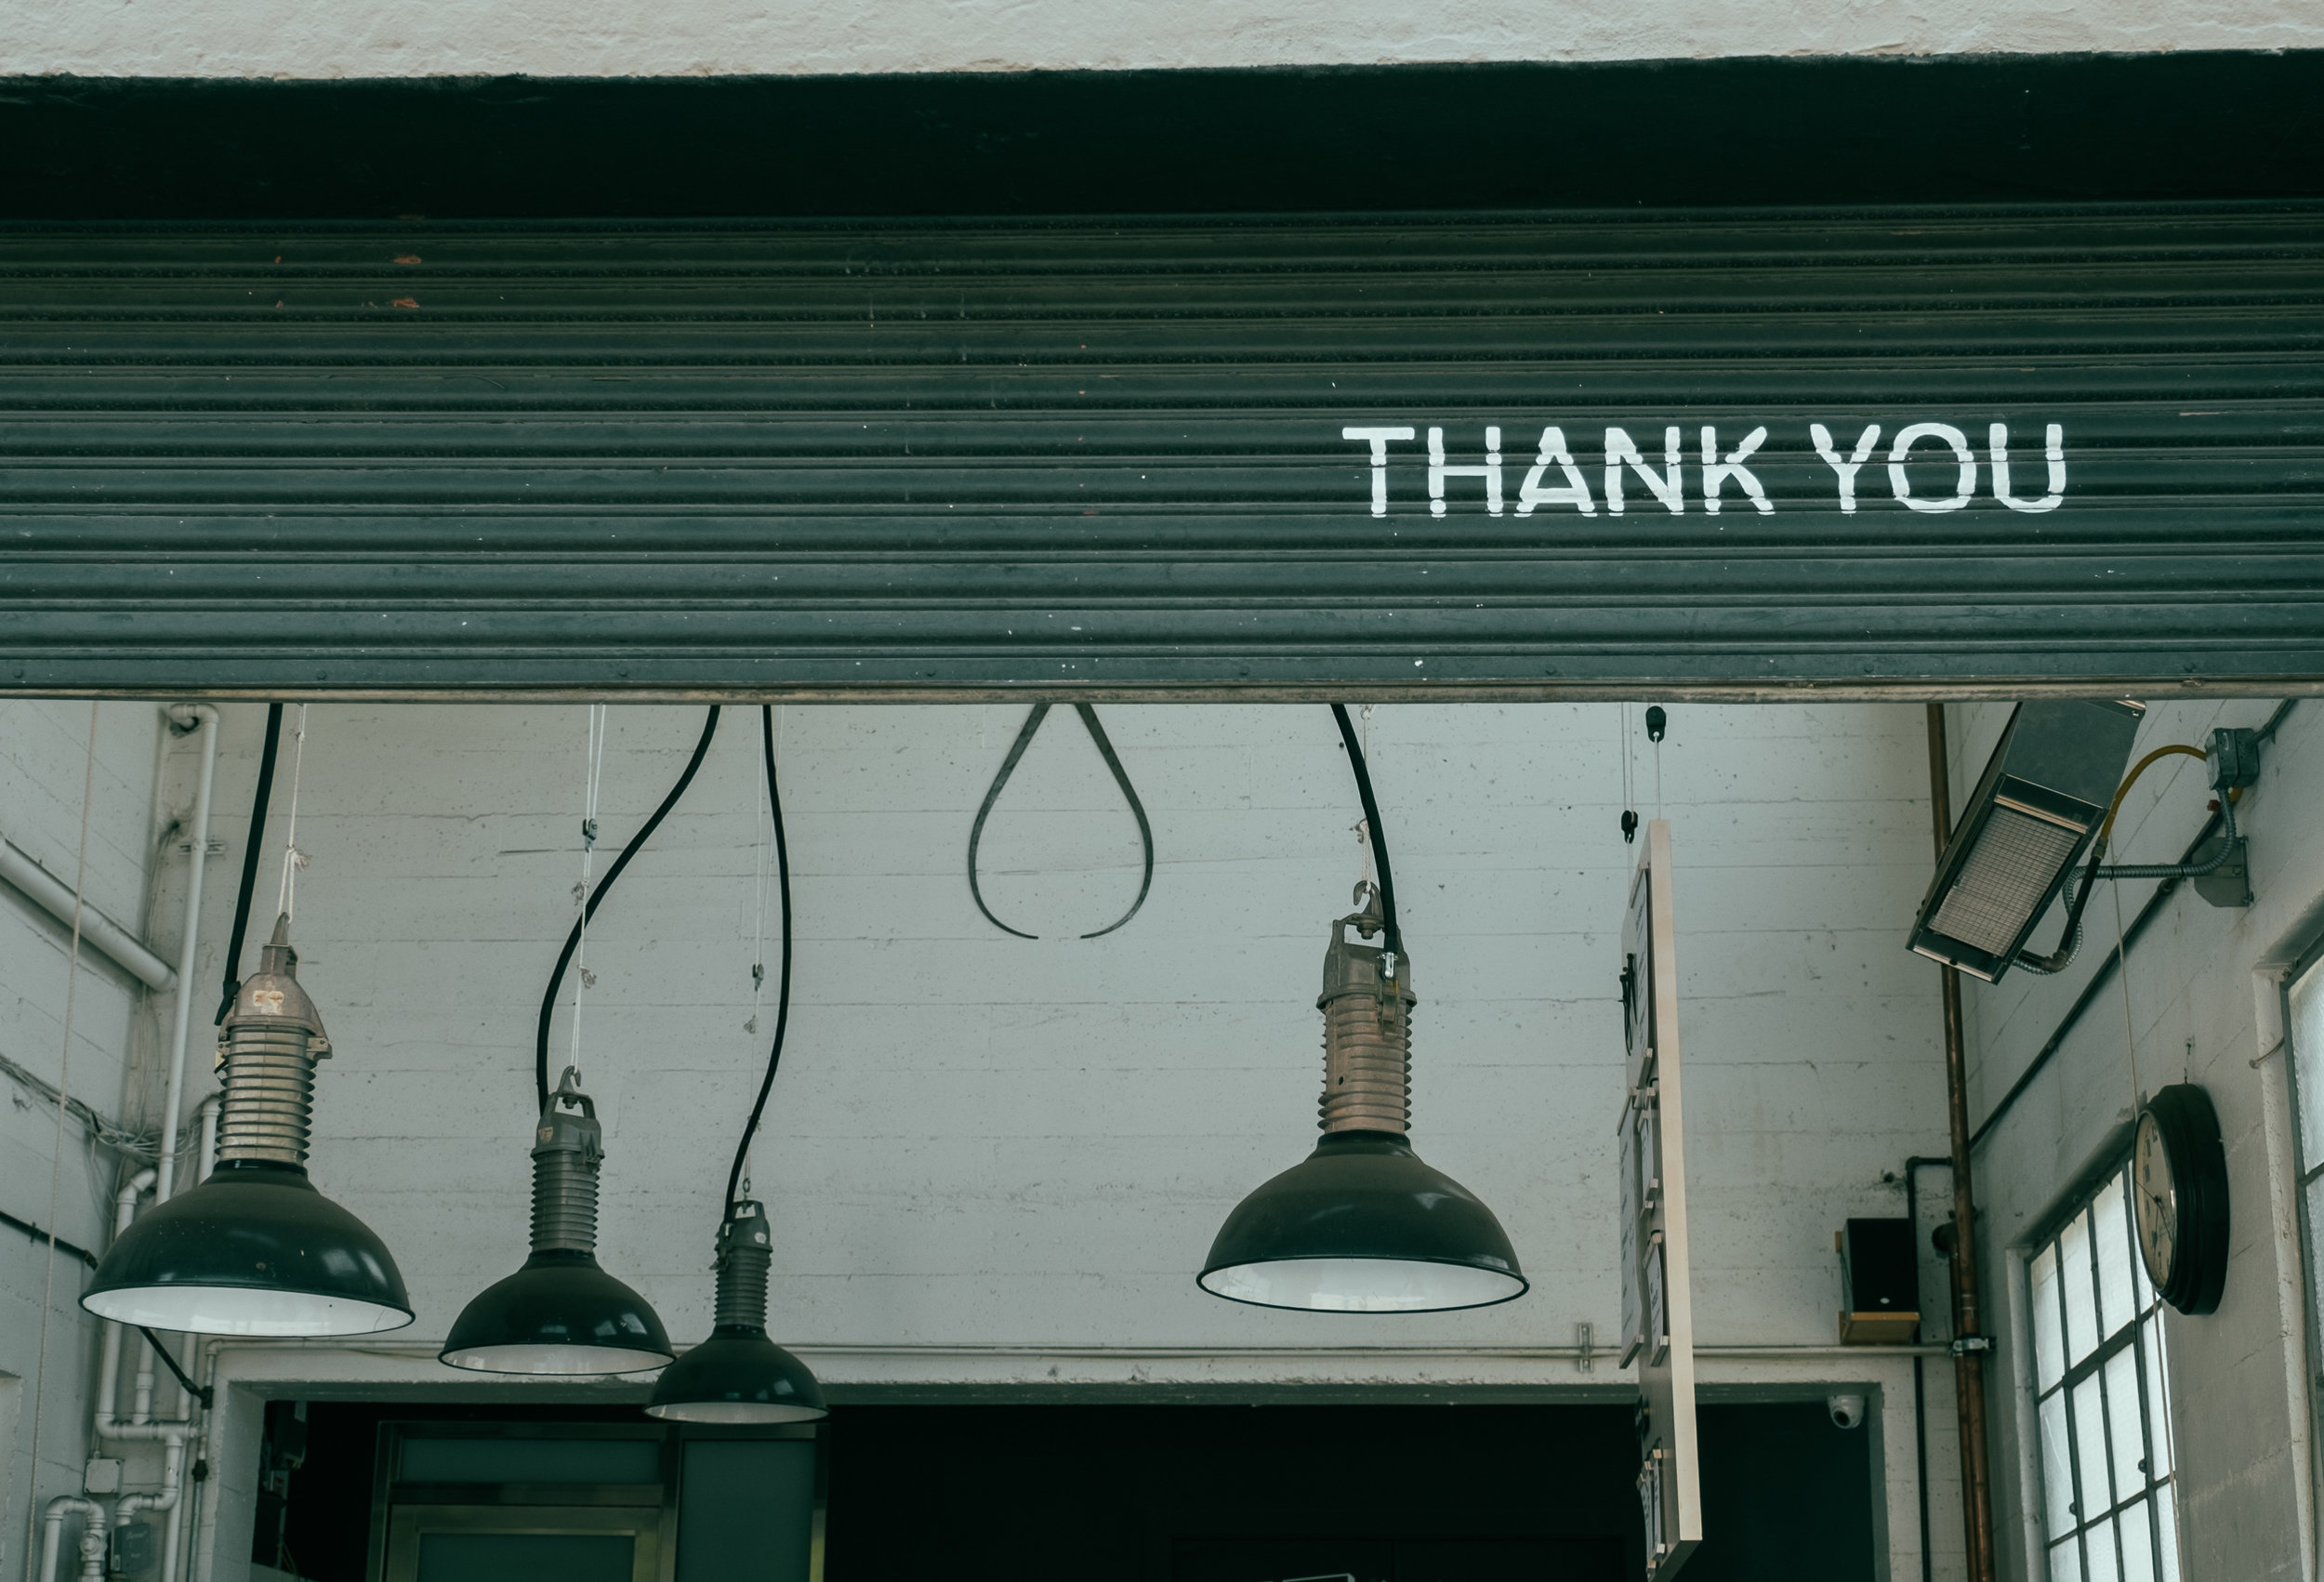 Thank you with hanging lights.jpg